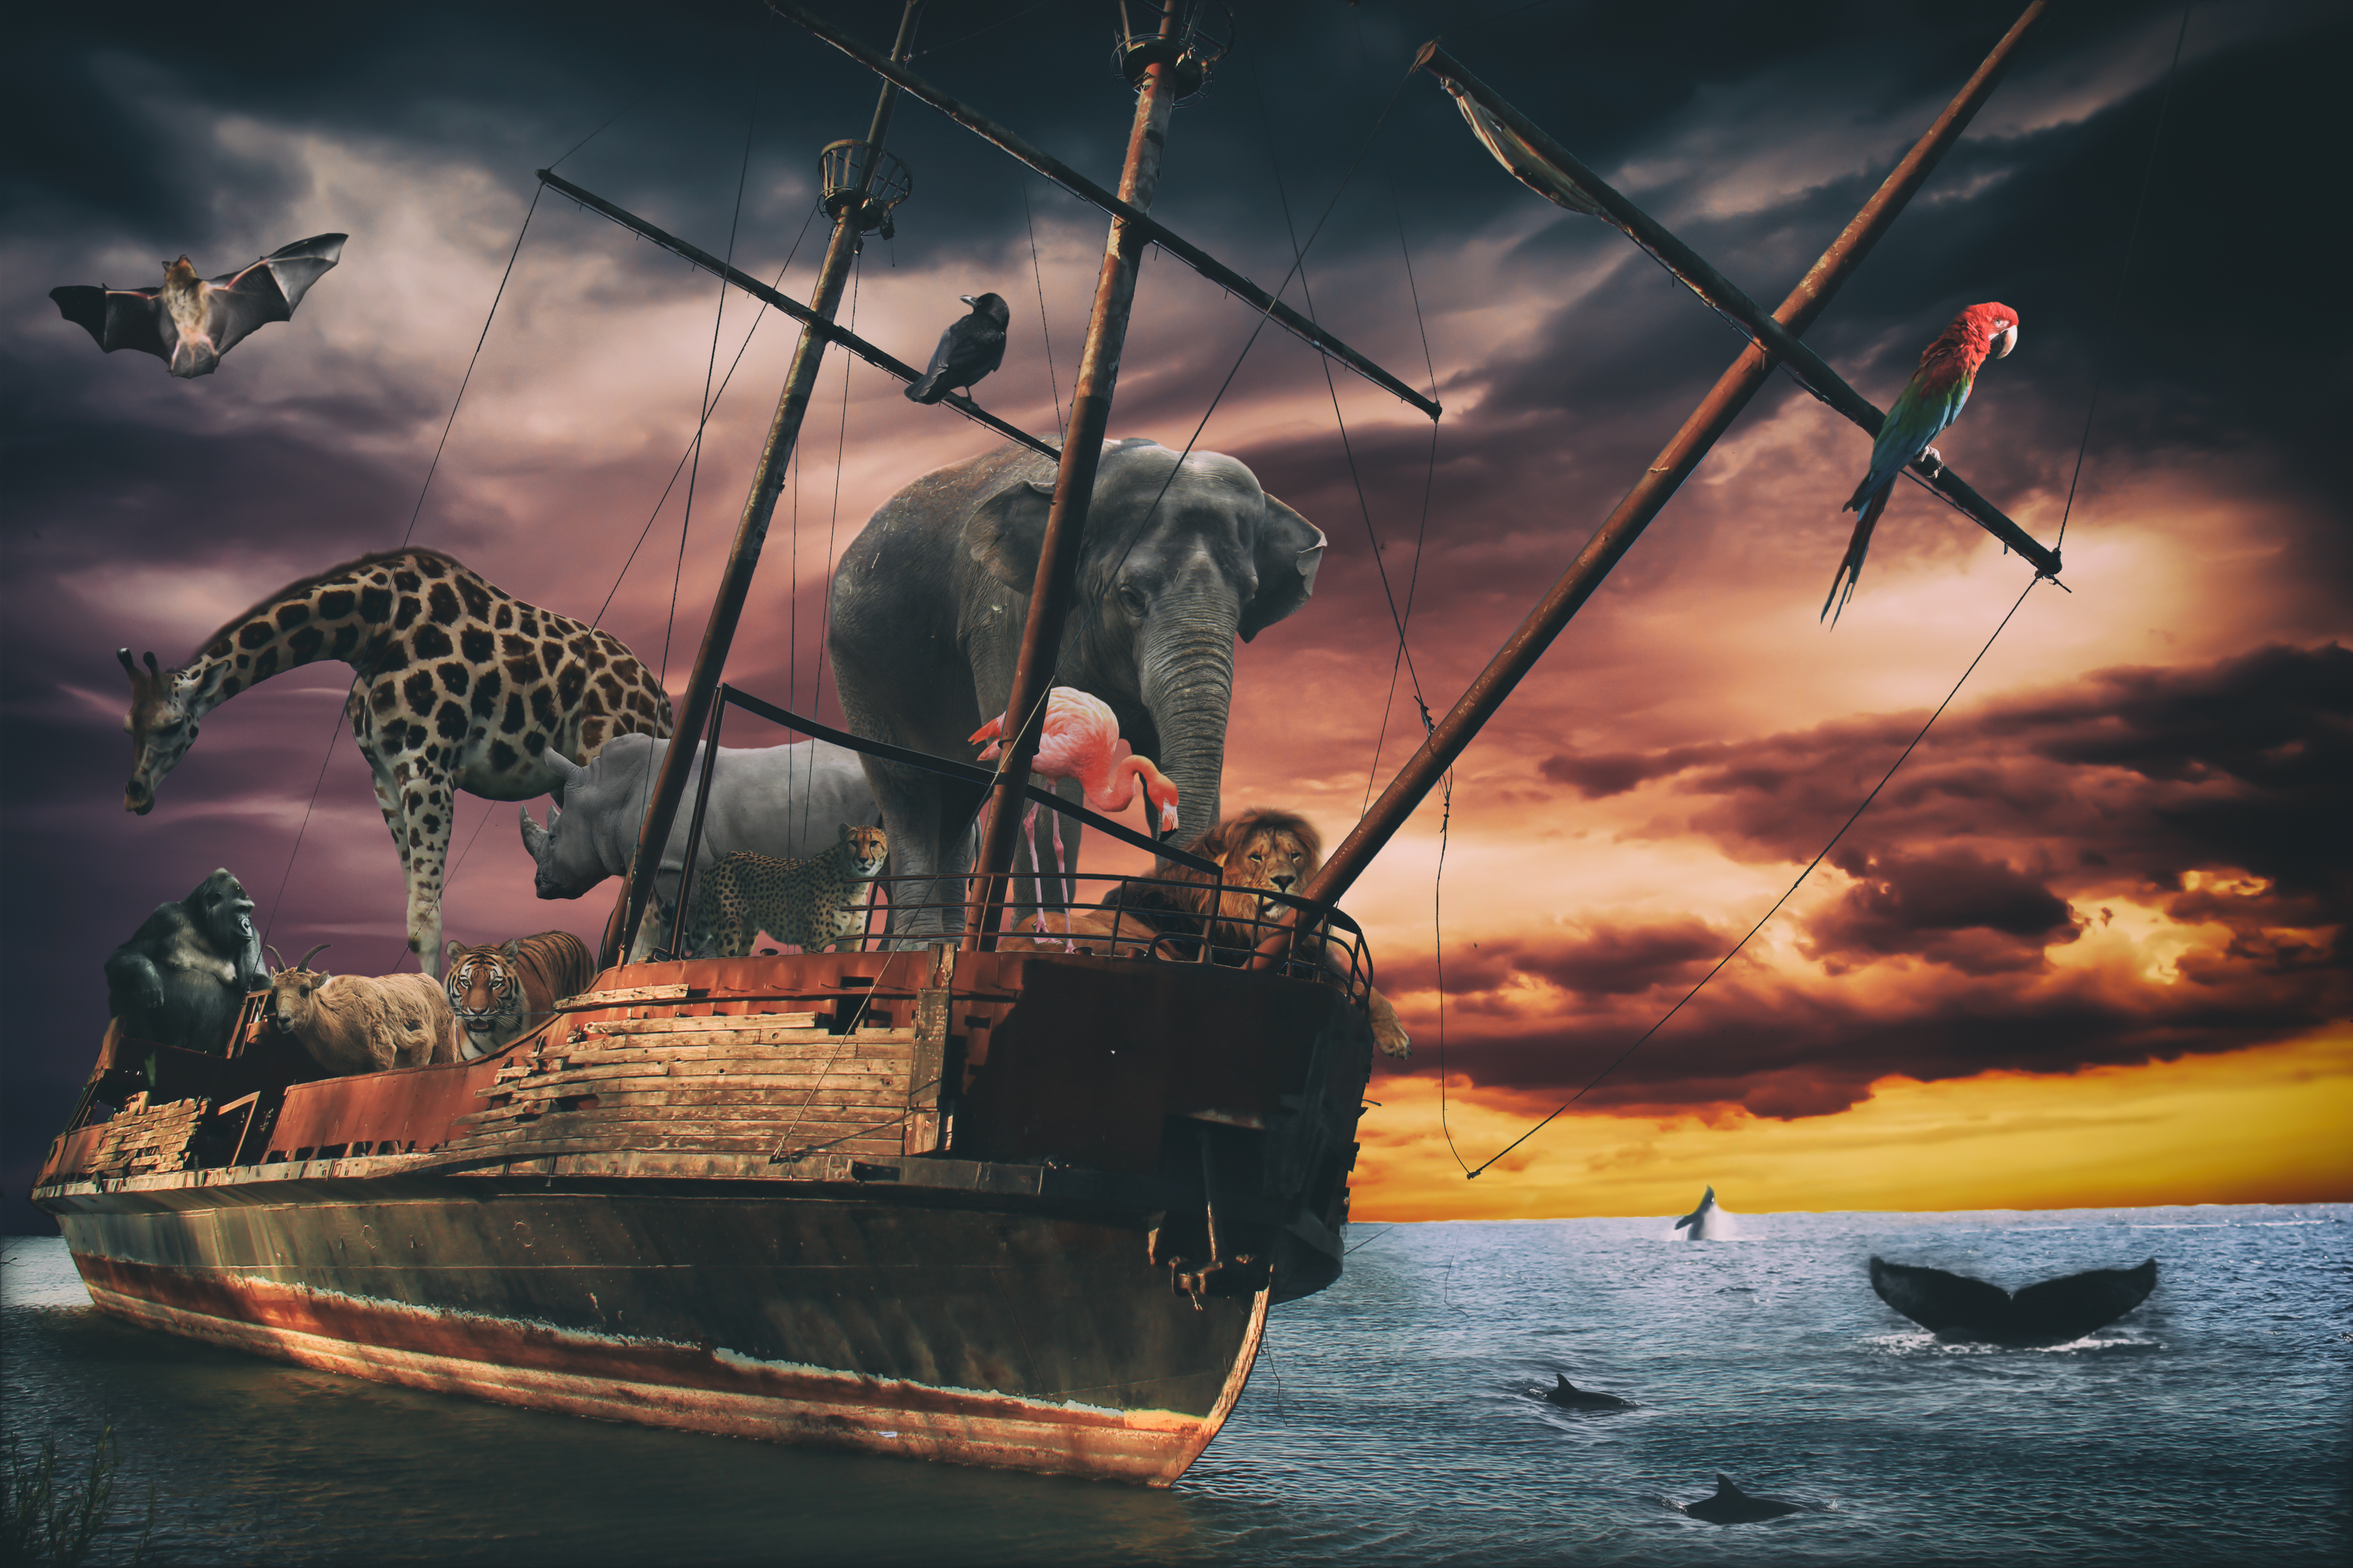 Noahs Ark Fantasy Animal Ship